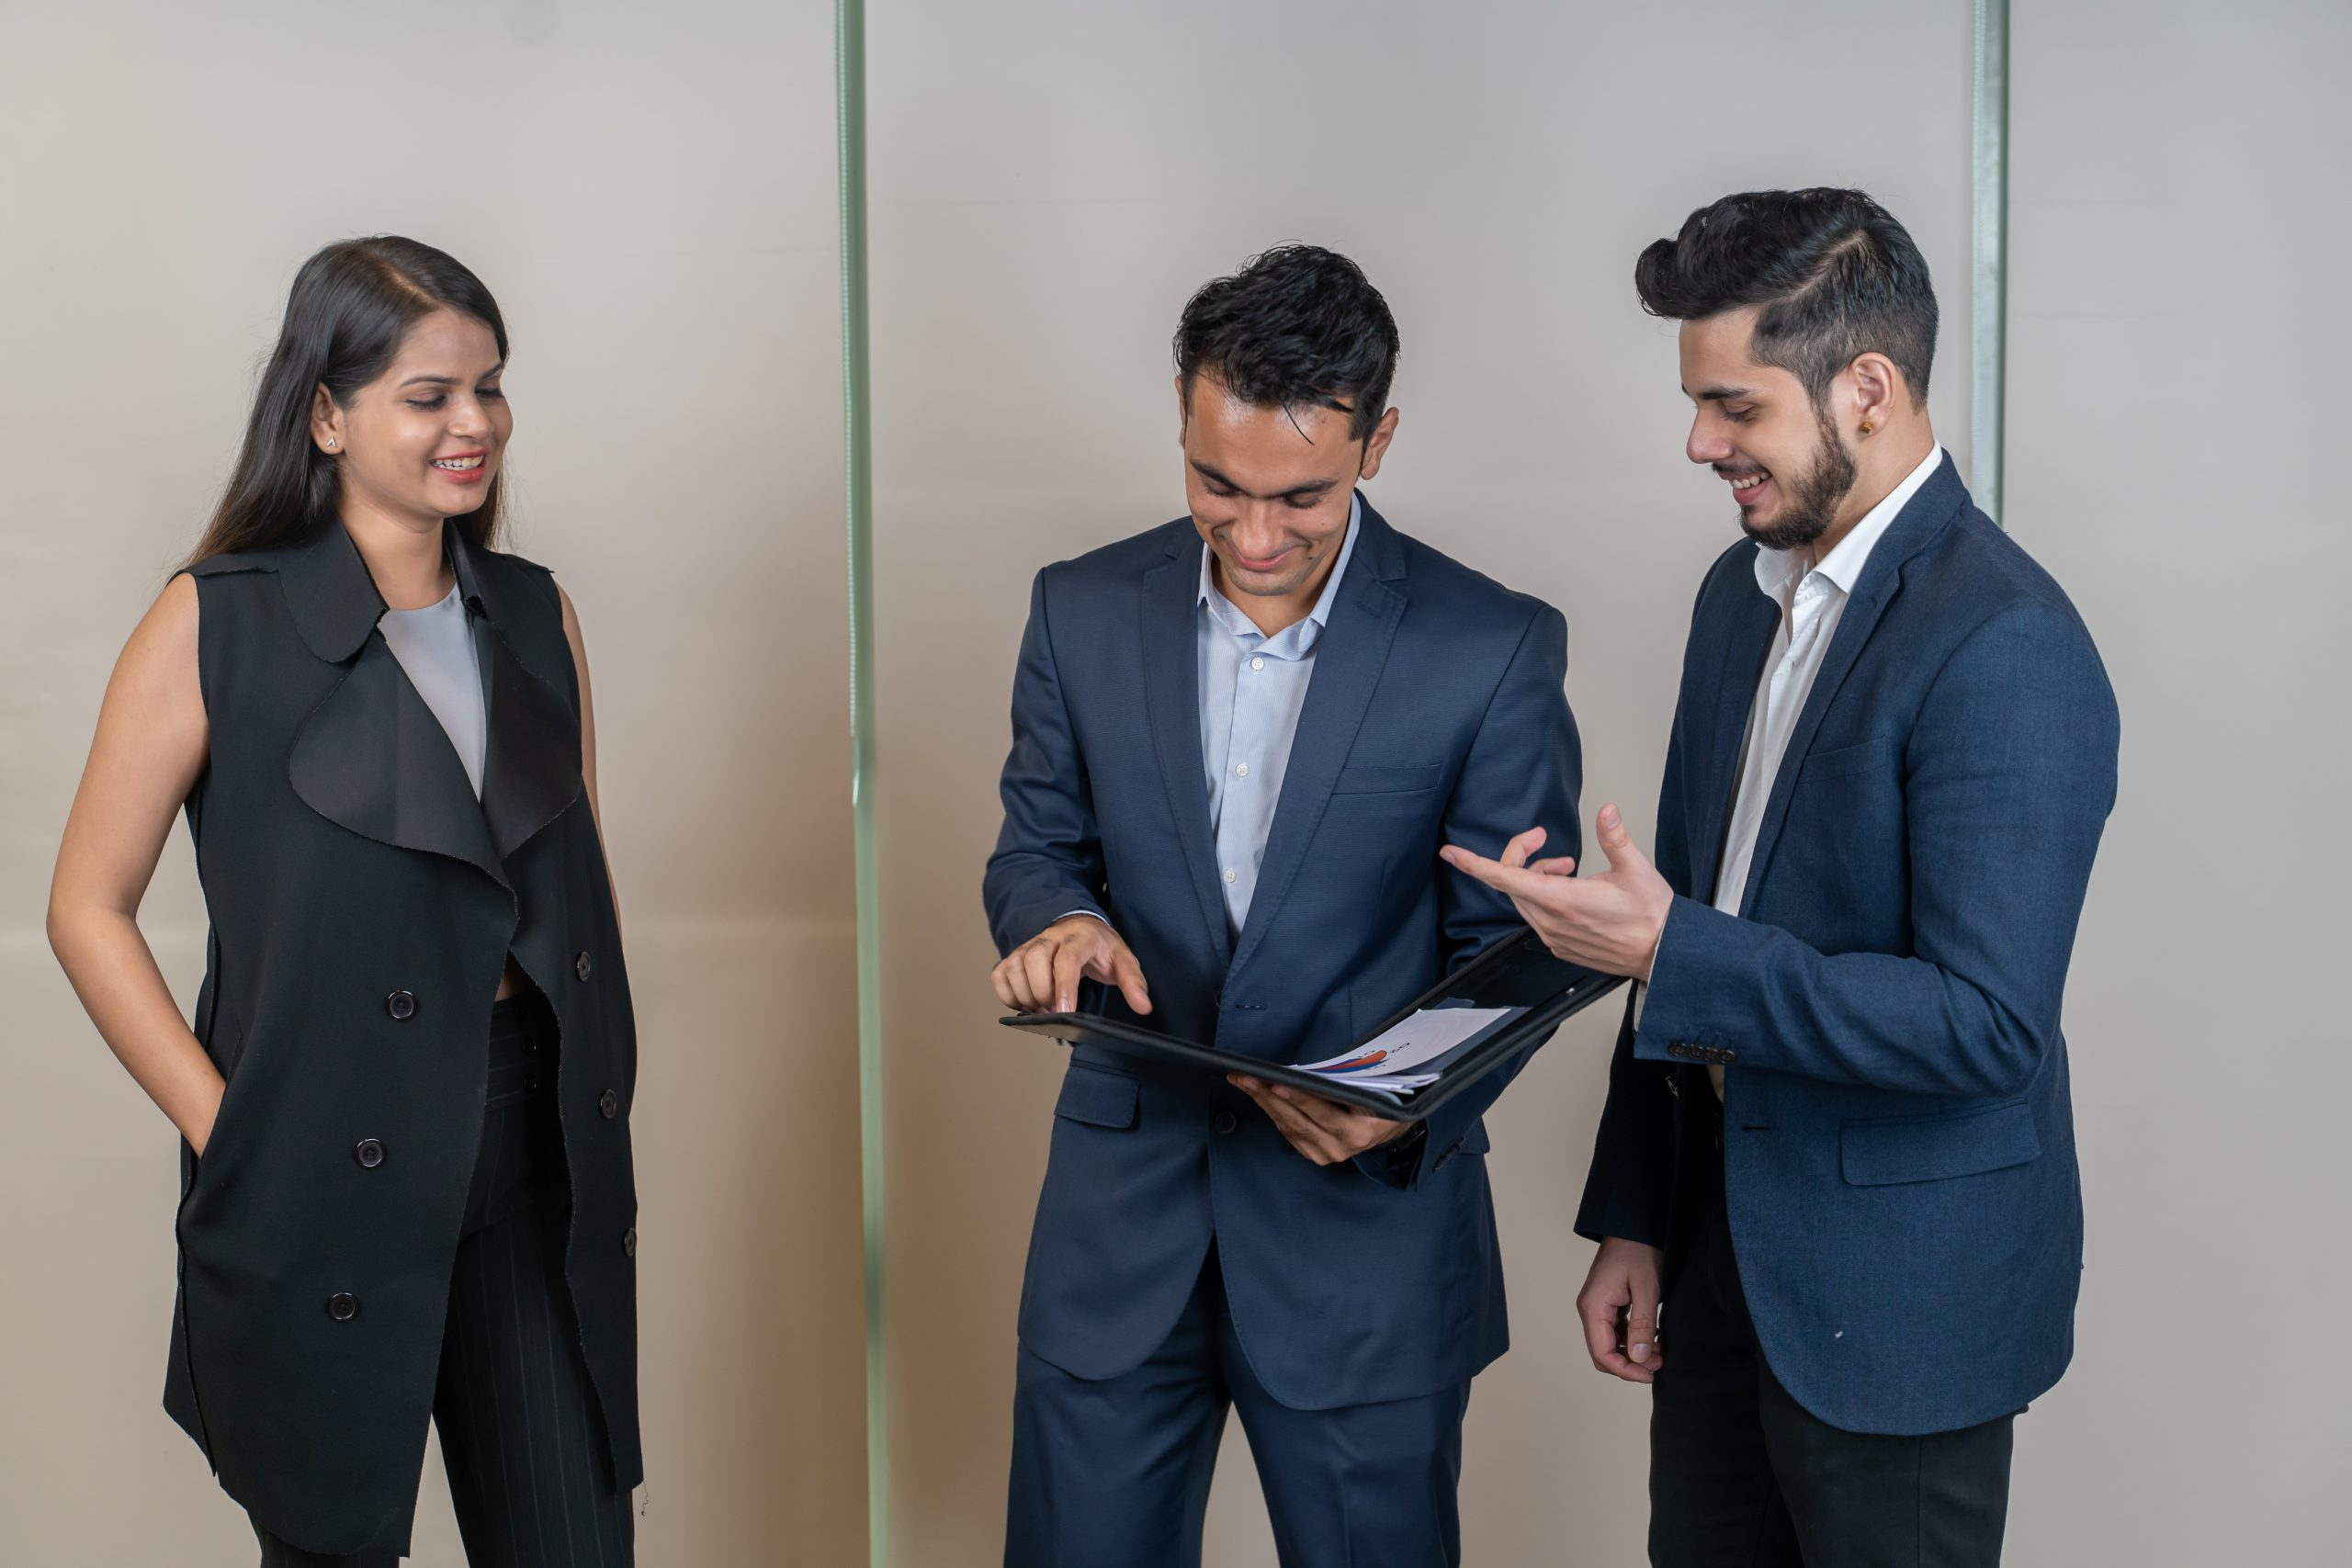 Employees showing report to boss